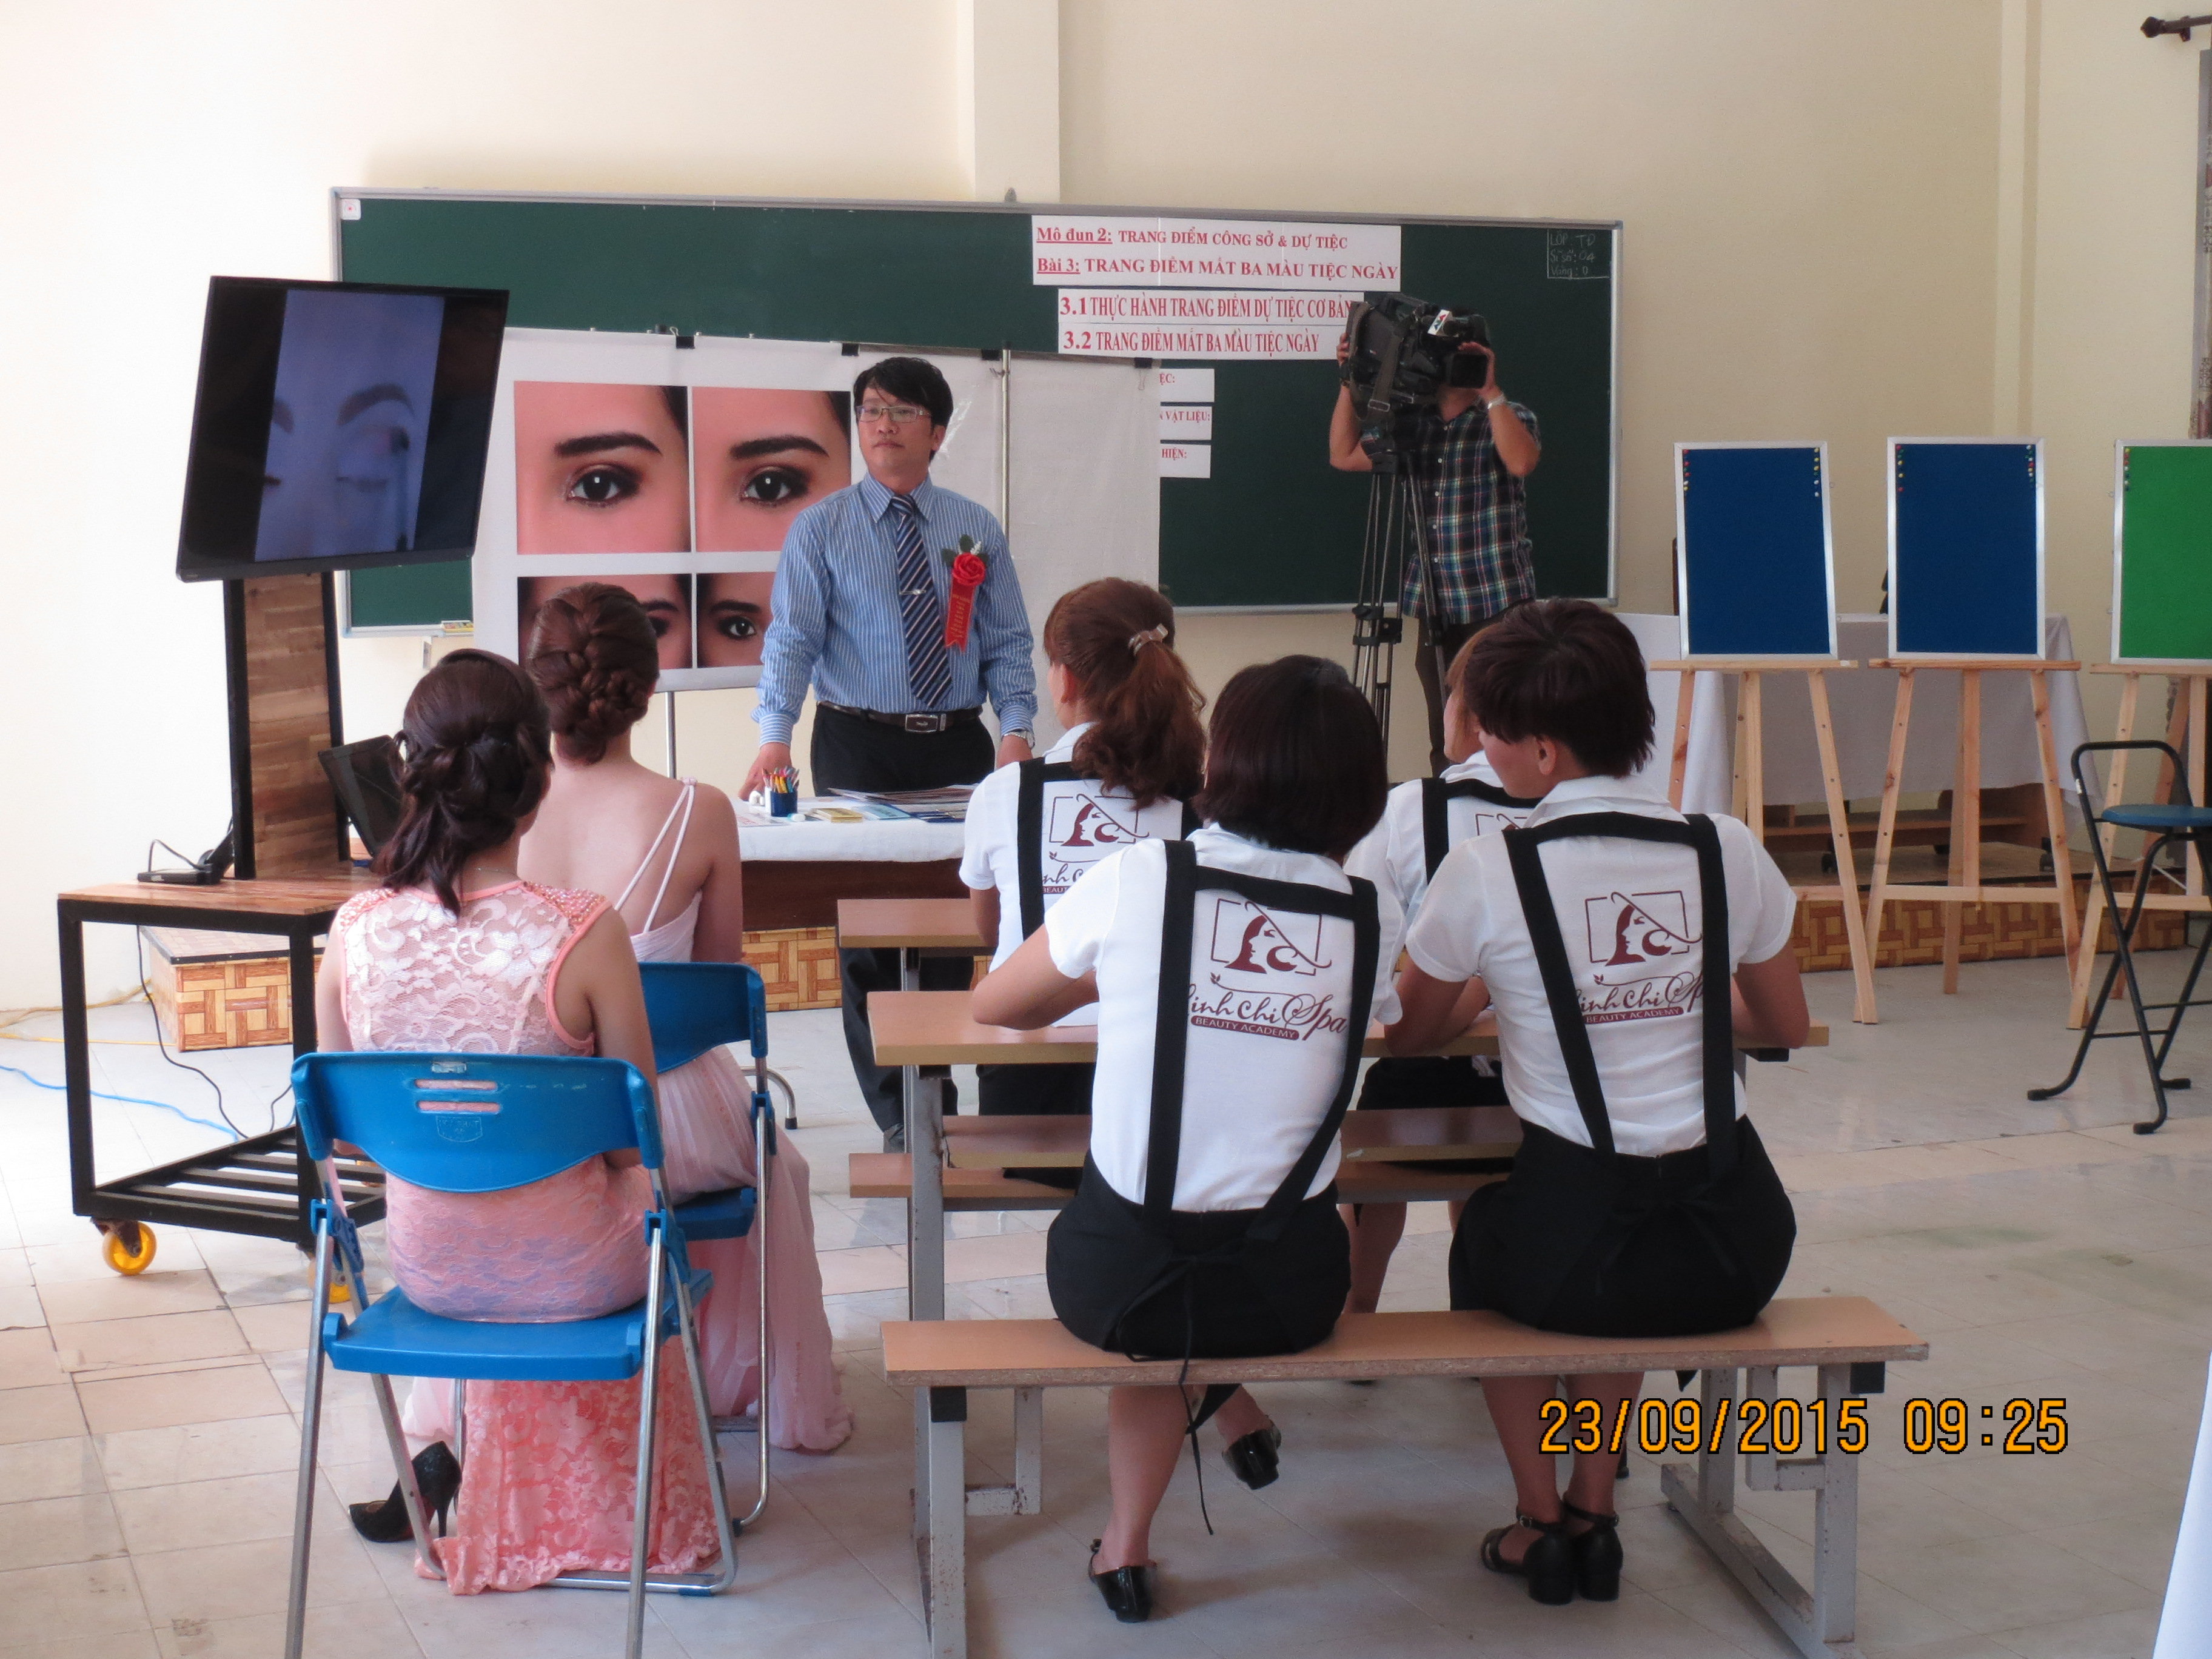 Presentation of lecture on Make-up